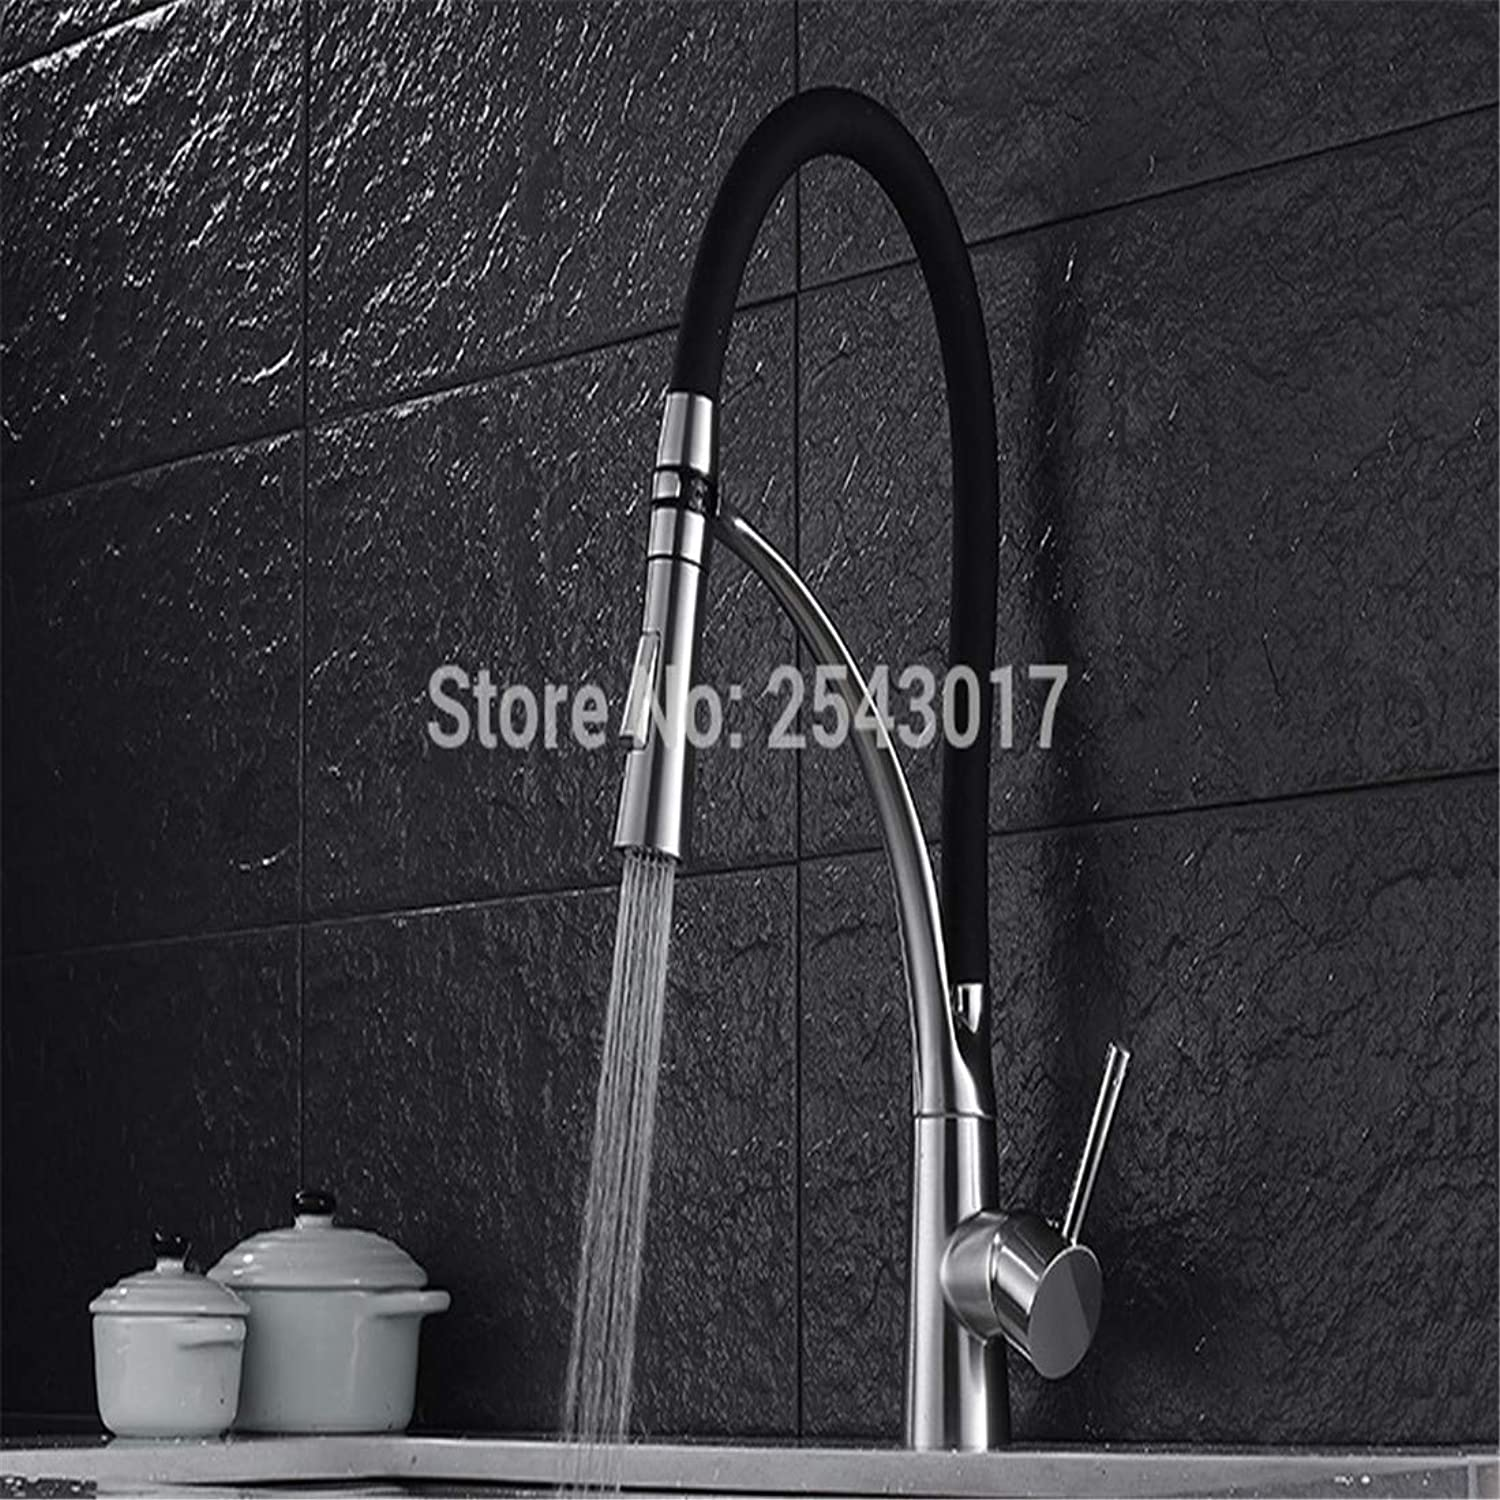 Luxury Modern Hot and Cold Faucet Vintage Platingbrush Nickel Flexible Faucet Mixer Tap Kitchen Pull Faucet